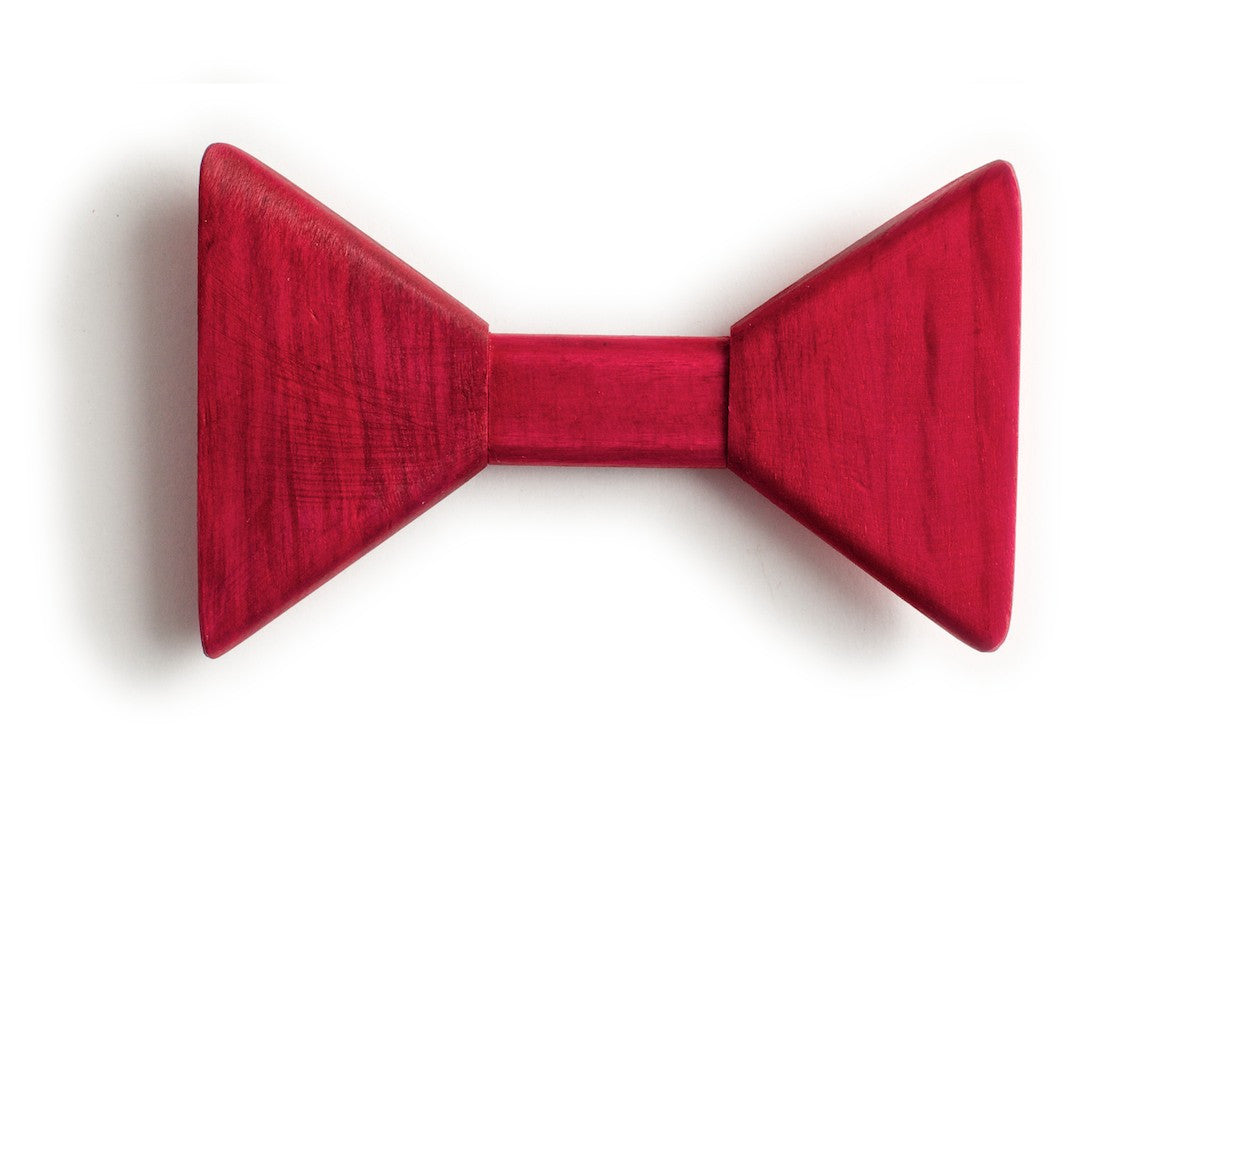 Sharp.c Pink Wooden Bow Tie